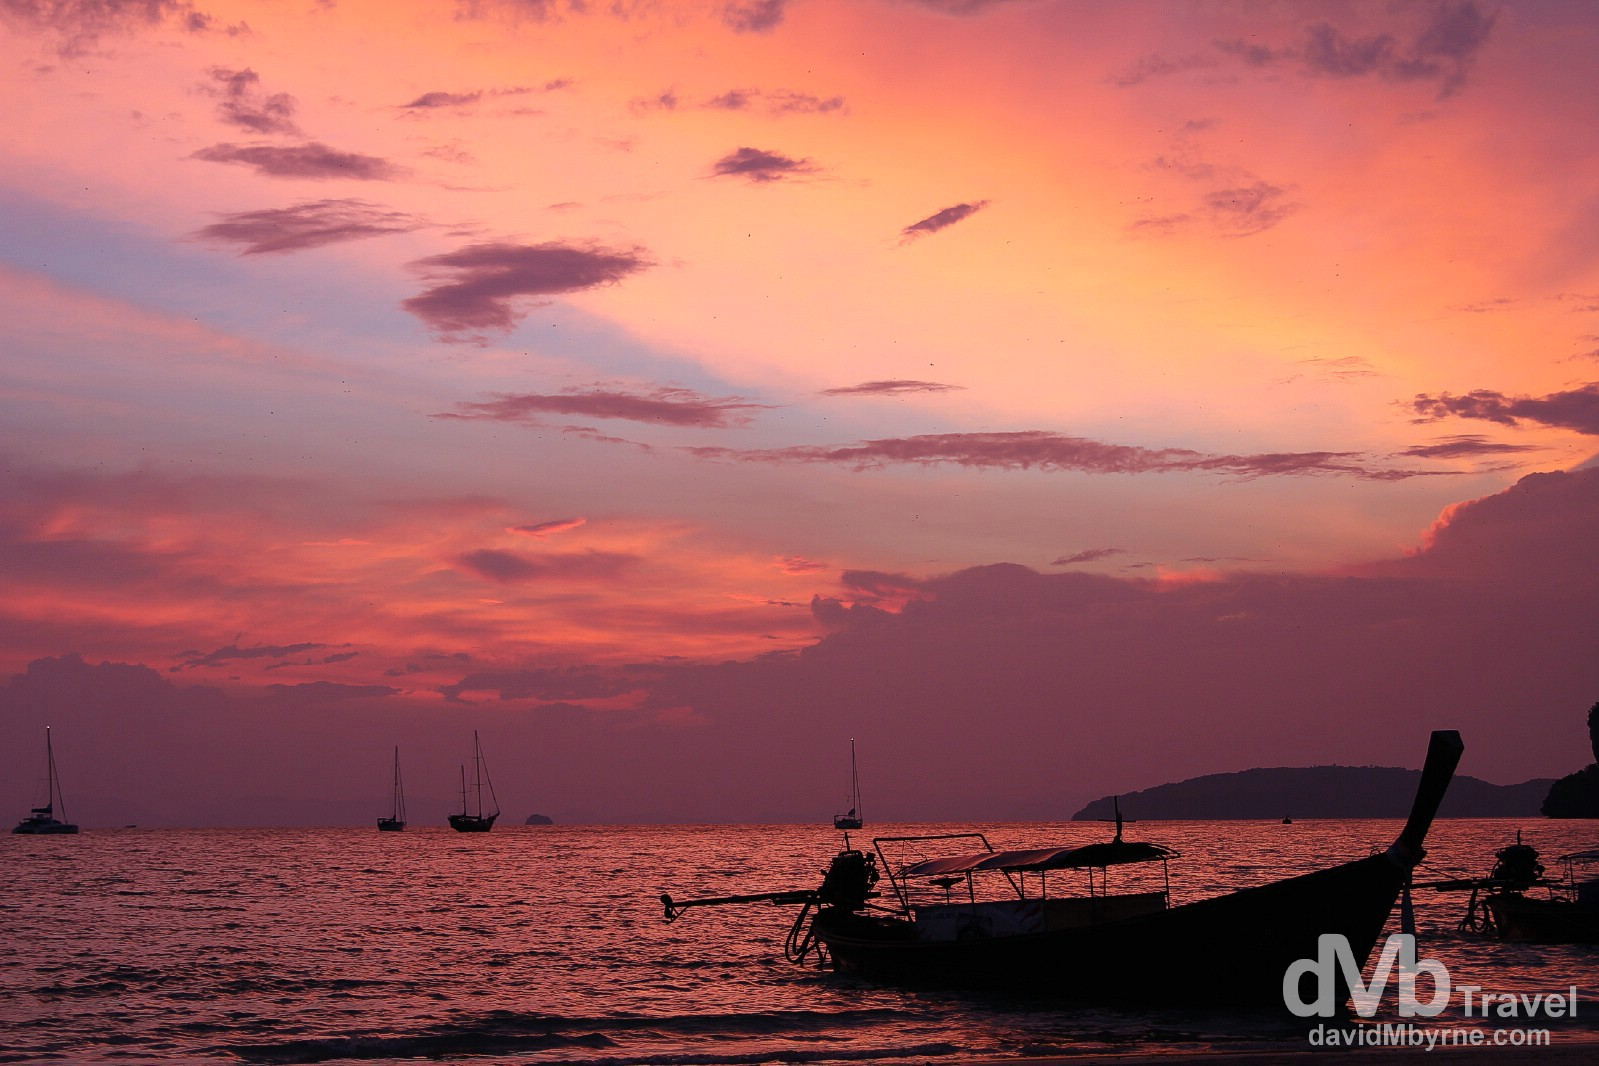 The sunset I witnessed on the last night by the beach in southern Thailand, and Thailand itself, wasn't one of those bright-golden-disc-in-the-sky type of sunsets - the sun disappeared behind clouds well before it hit the horizon & things dimmed pretty fast after that. I was disappointed – 3 nights & 3 sunset no-shows. But then, sitting as I was sulking into my Chang beer & cursing all things Thailand, something wonderful happened; the sky above started to glow a beautifully comforting shade of pink. This continued until eventually everything around was bathed in this beautiful pinky purple glow. It was surreal & sitting on a beach awash with pink was very zen. Late sunset on Hat Rai Leh West Beach Krabi Thailand